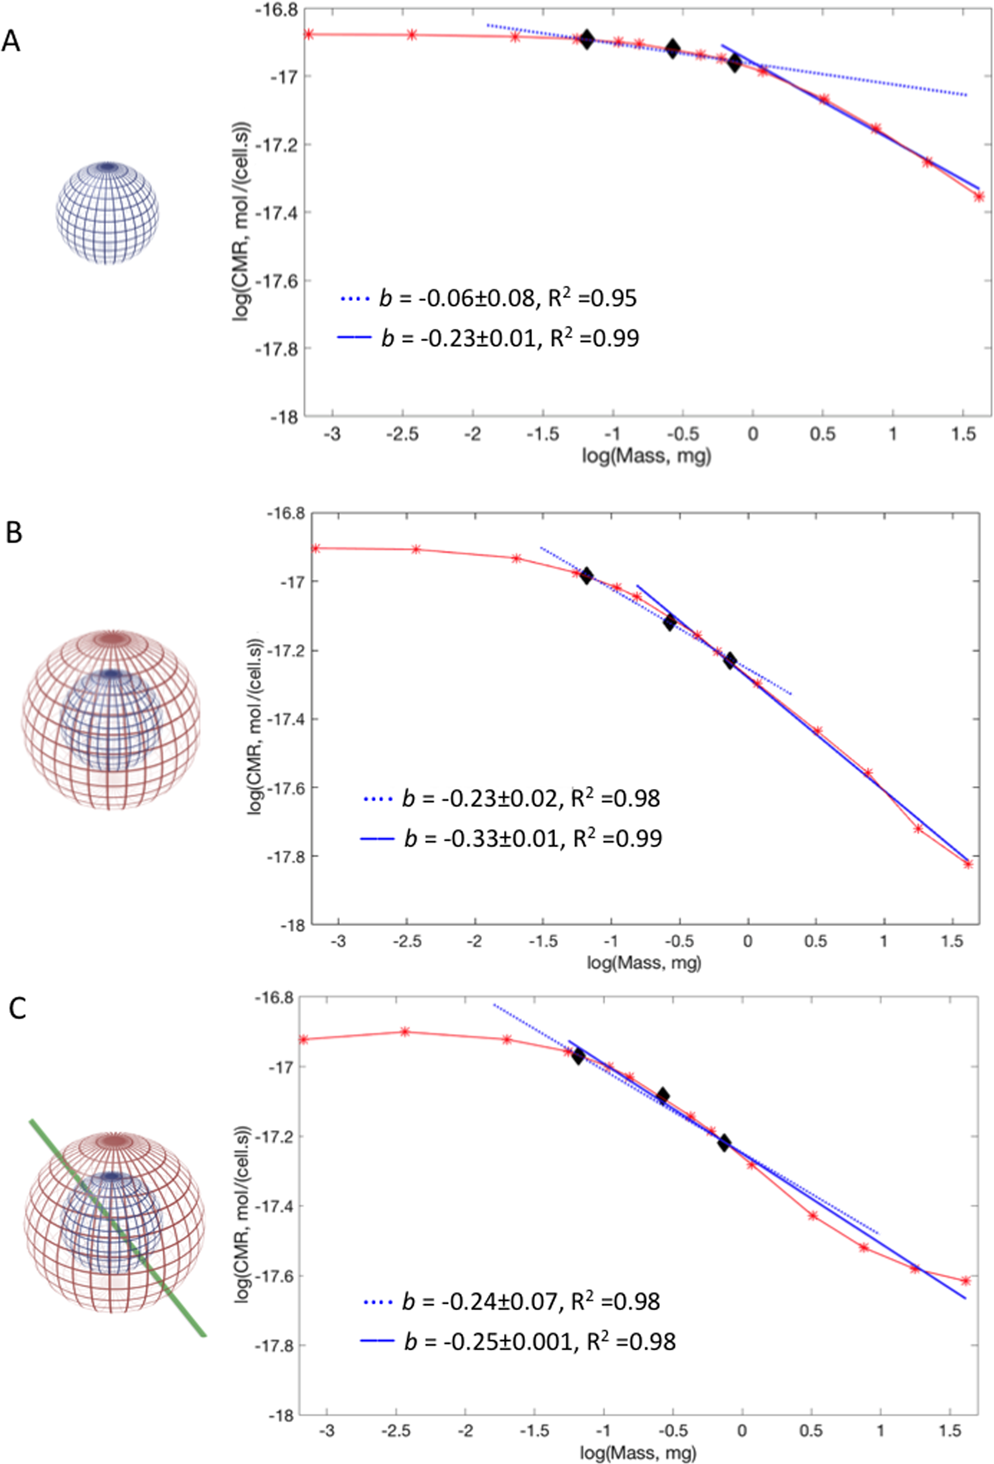 Allometric Scaling of physiologically-relevant organoids